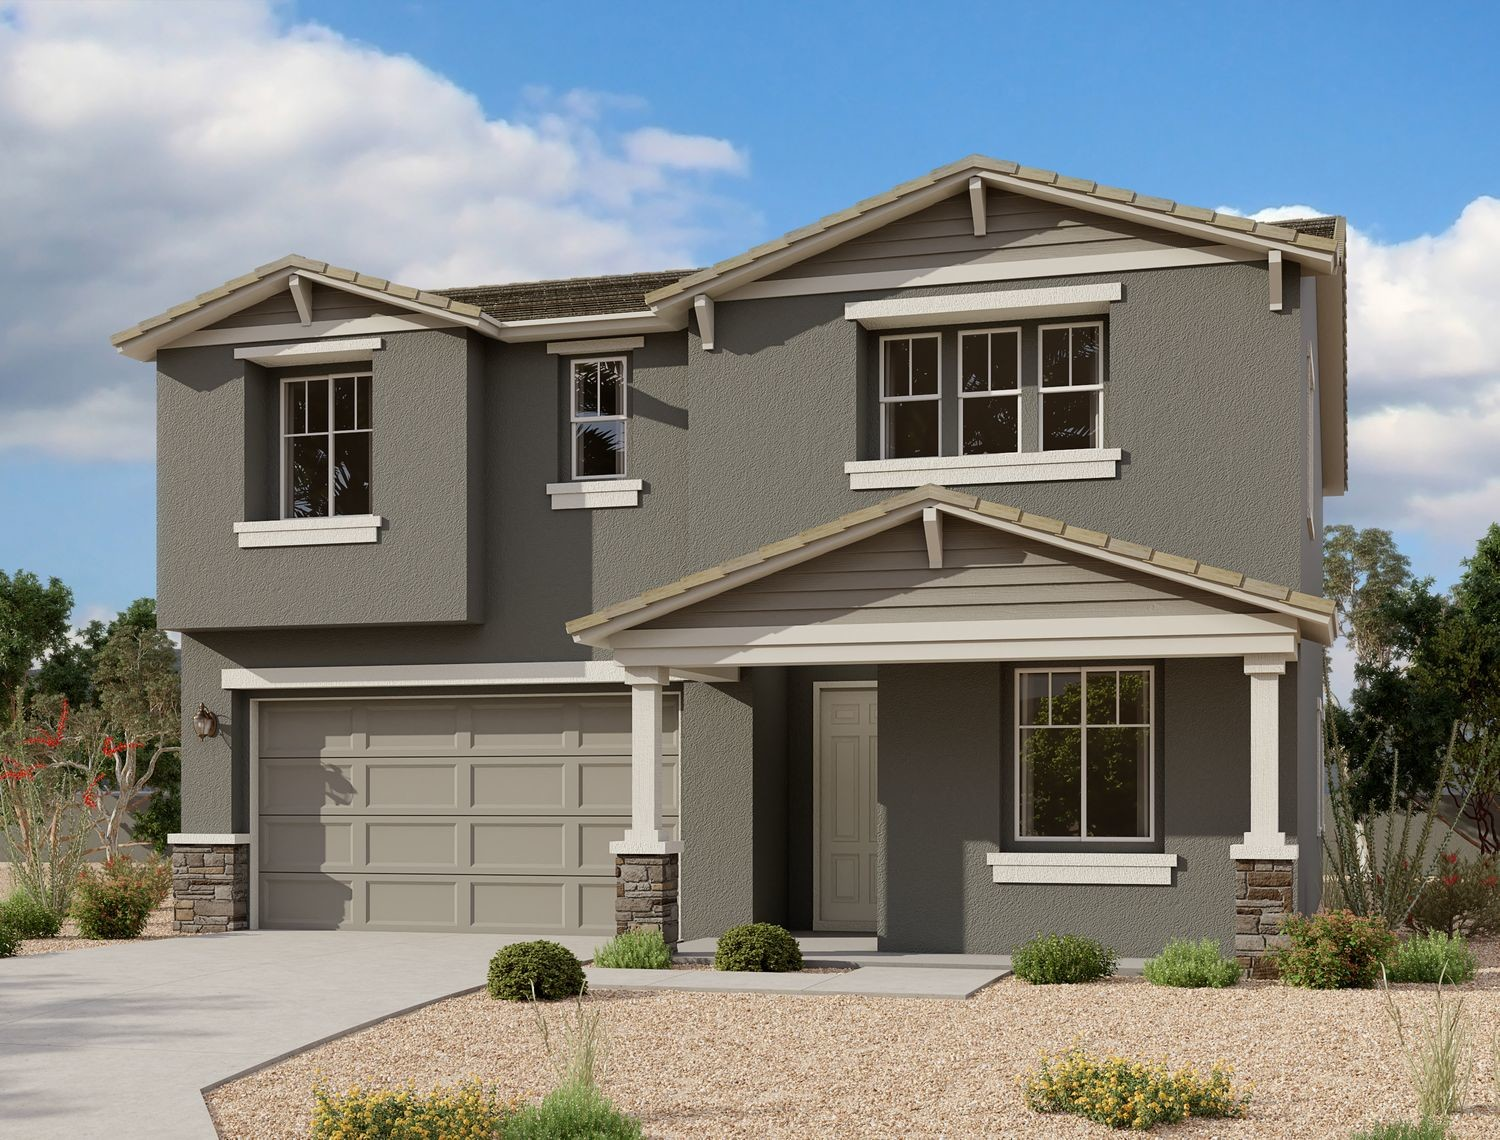 Move In Ready New Home In Inspirian III at Eastmark Community